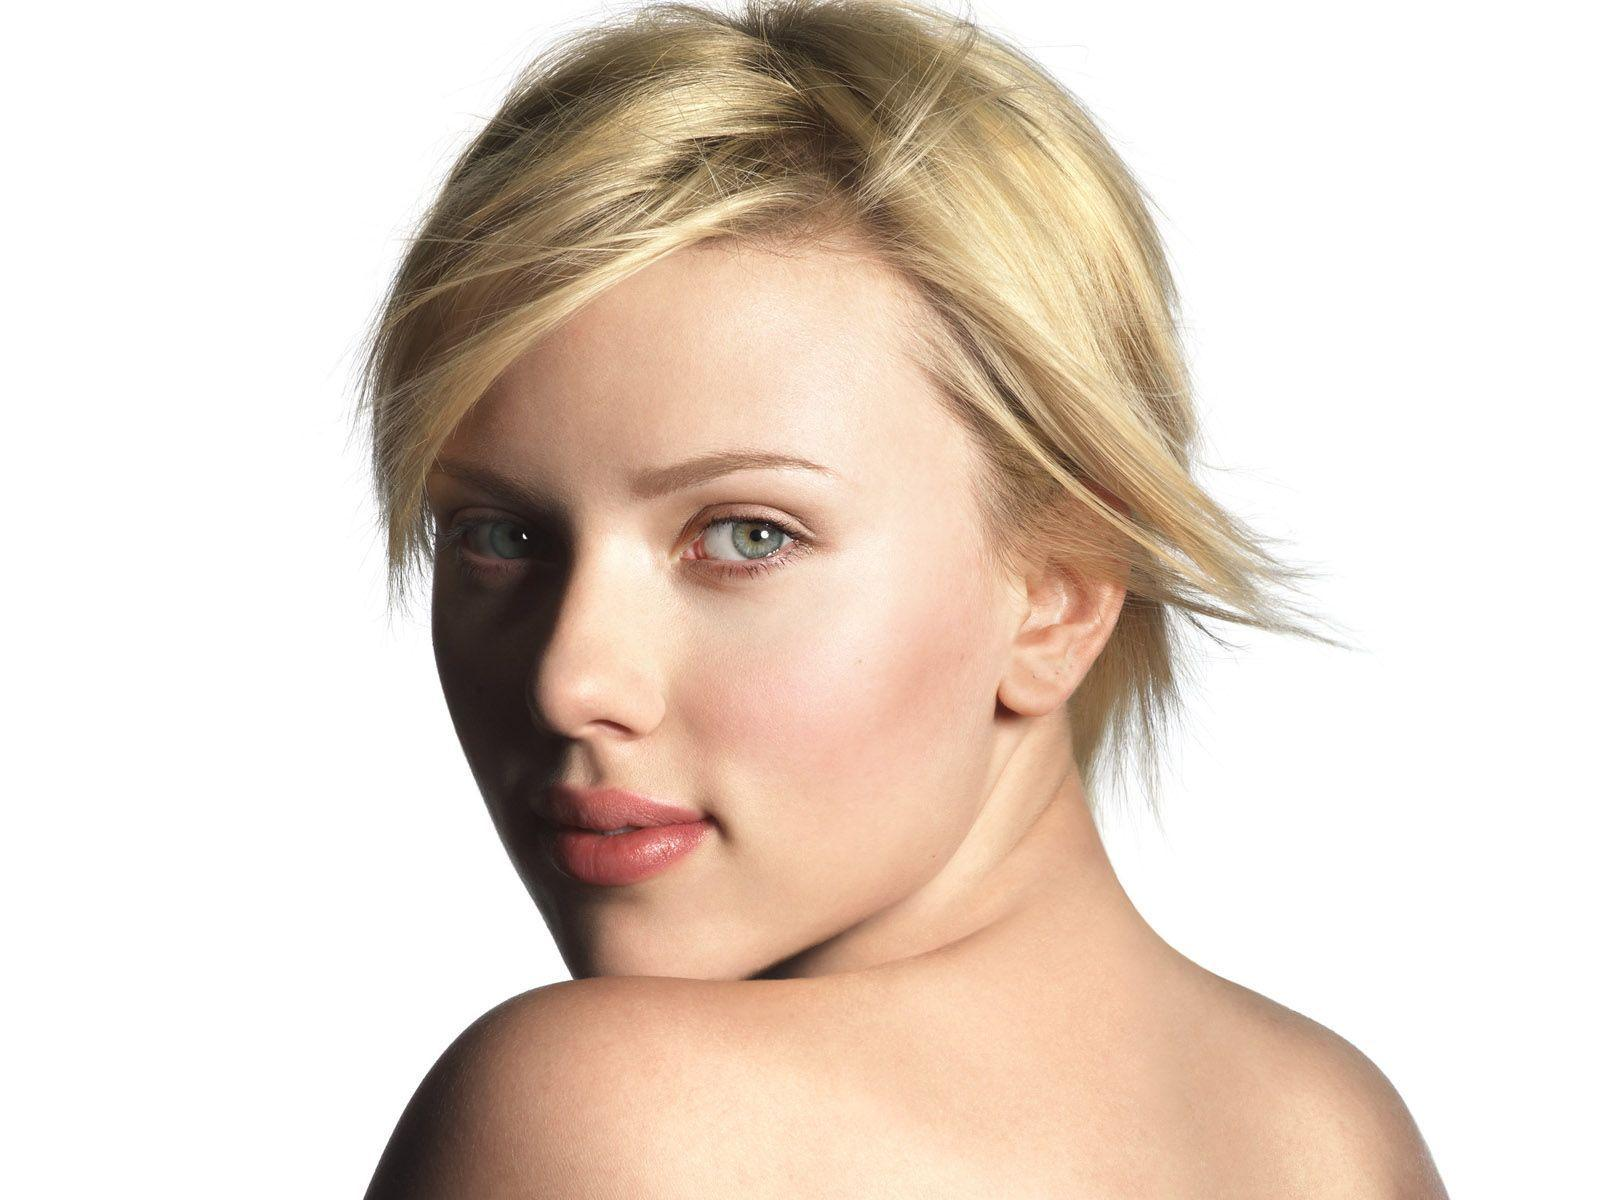 scarlett johansson HD Wallpaper 2013 1600×1200 - High Definition ...